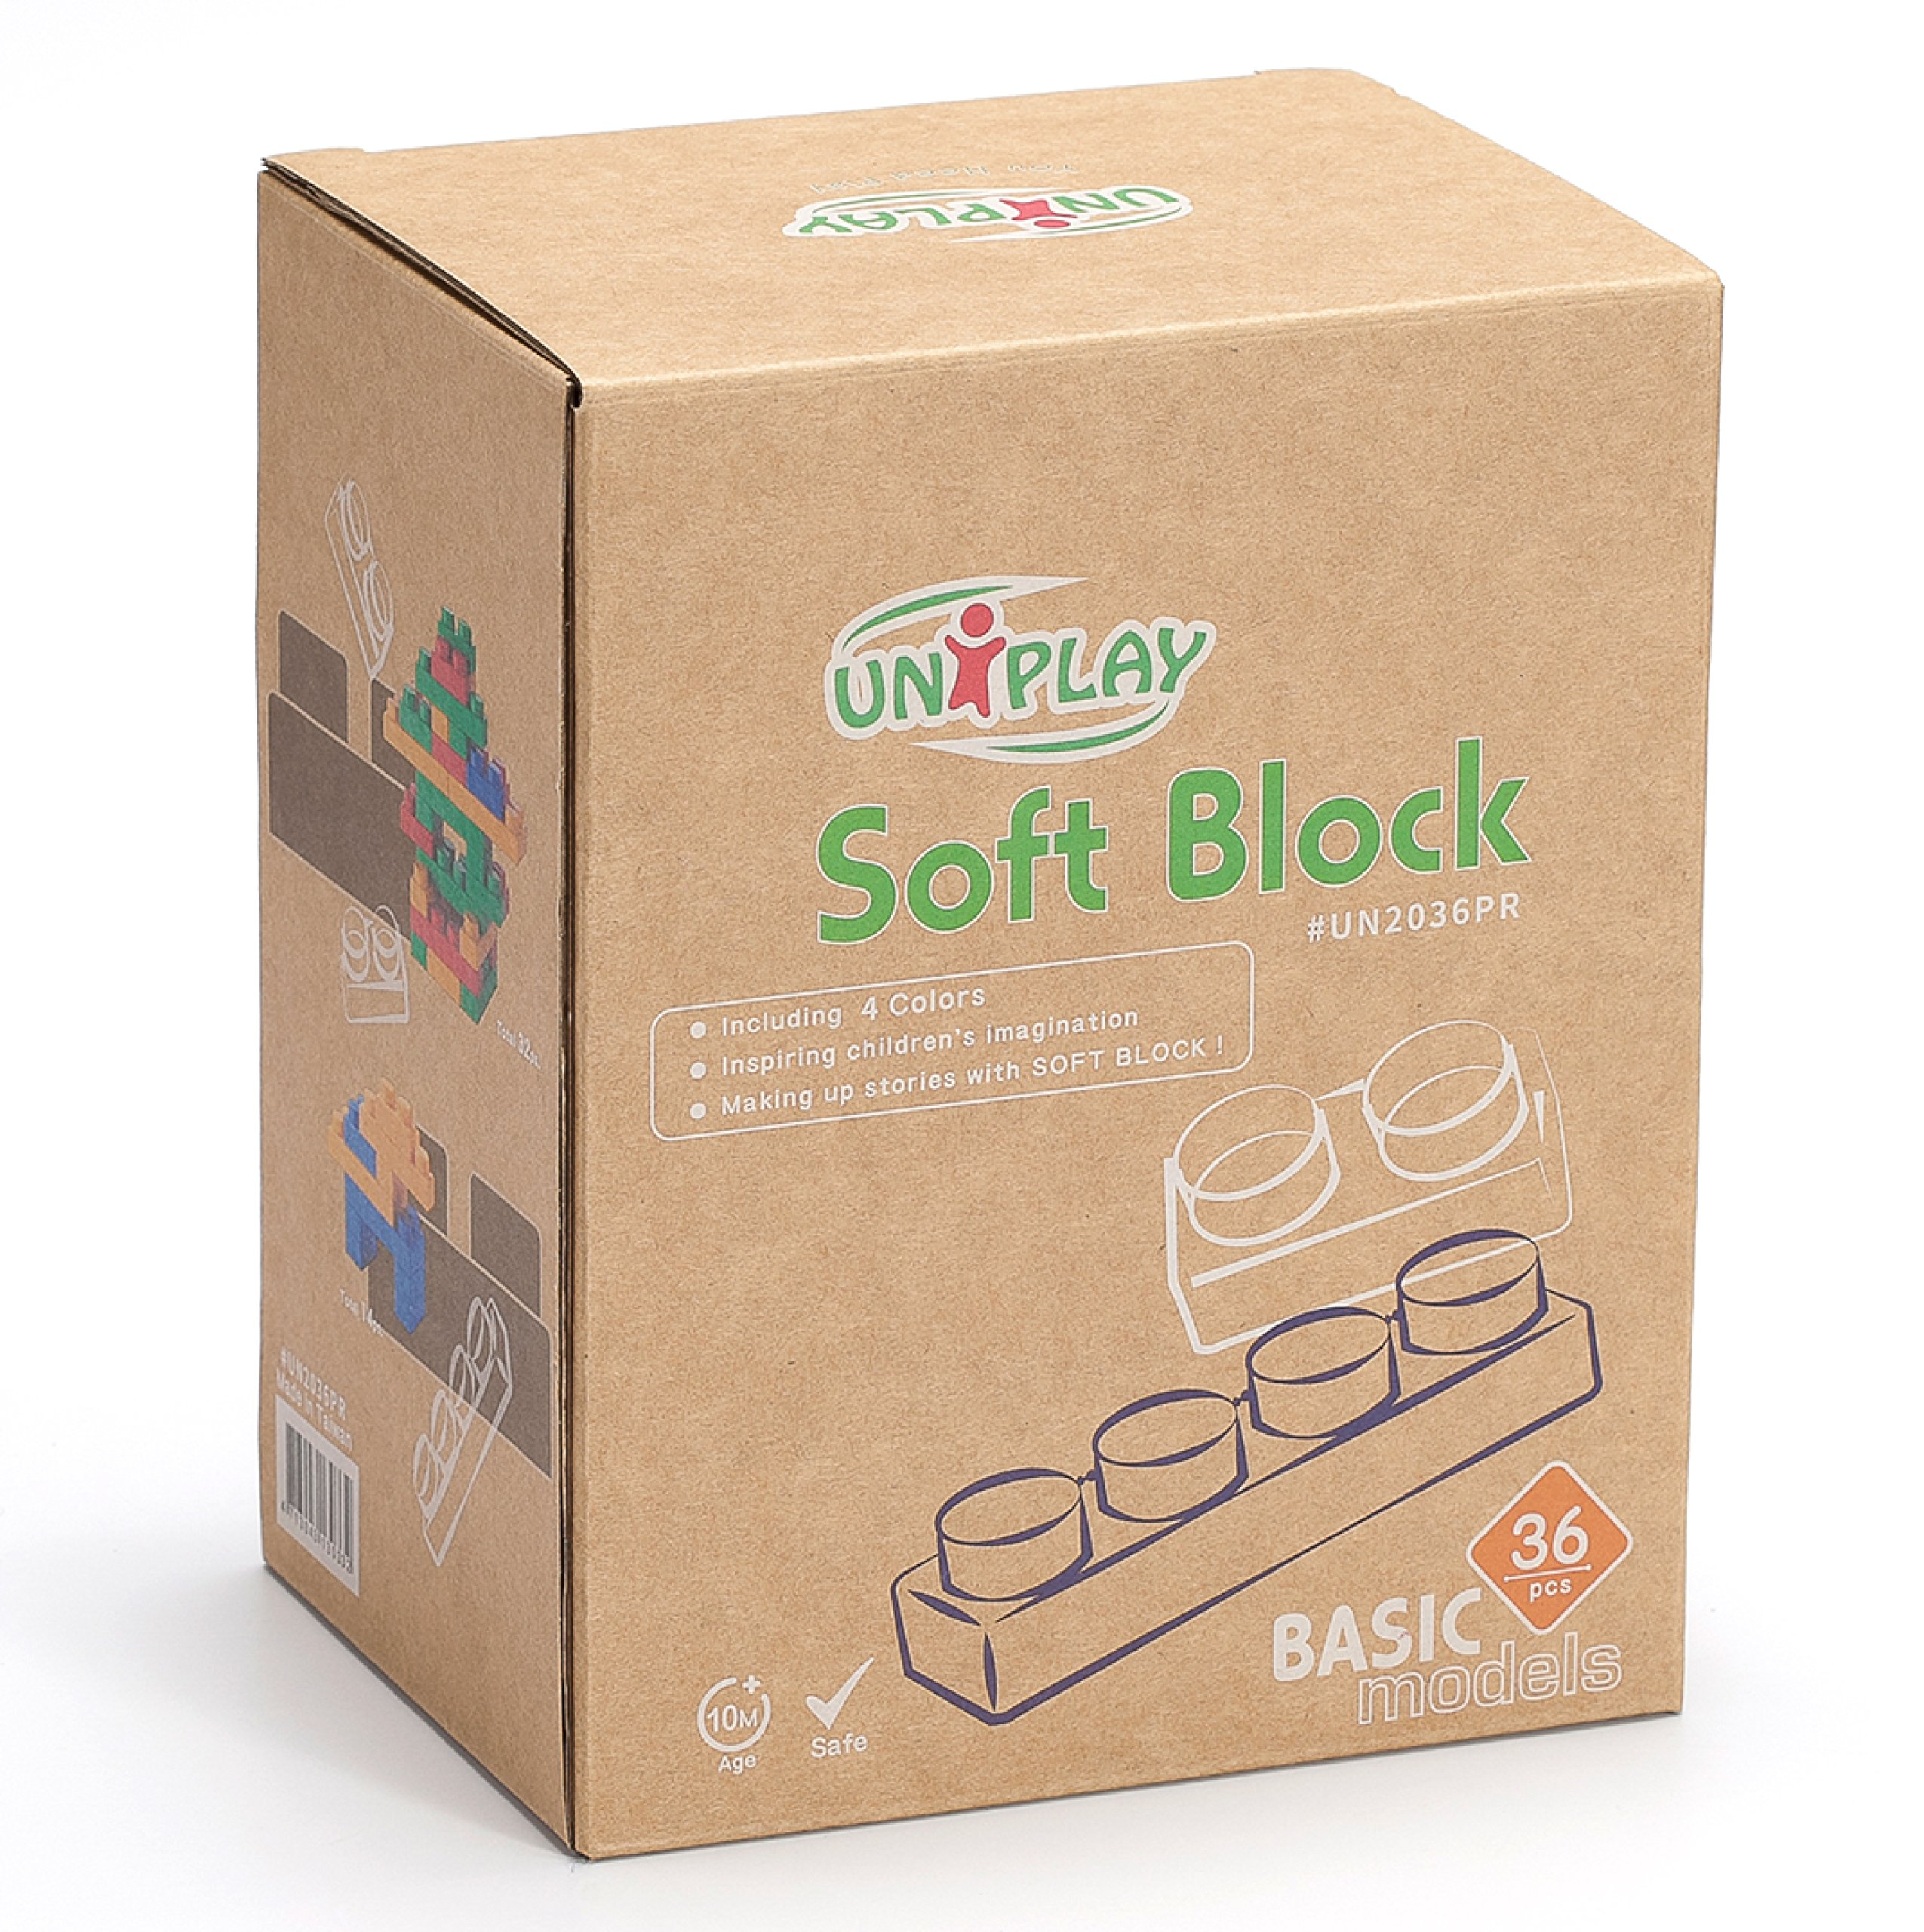 UNiPLAY Soft Building Blocks - Basic Series(36 PCS), Educational and Creative Toys, Food Grade Material(Antibacterial), Non-Toxic,100%SAFE for Kids, Toddlers, Baby, Preschoolers by UNiPLAY (Image #3)